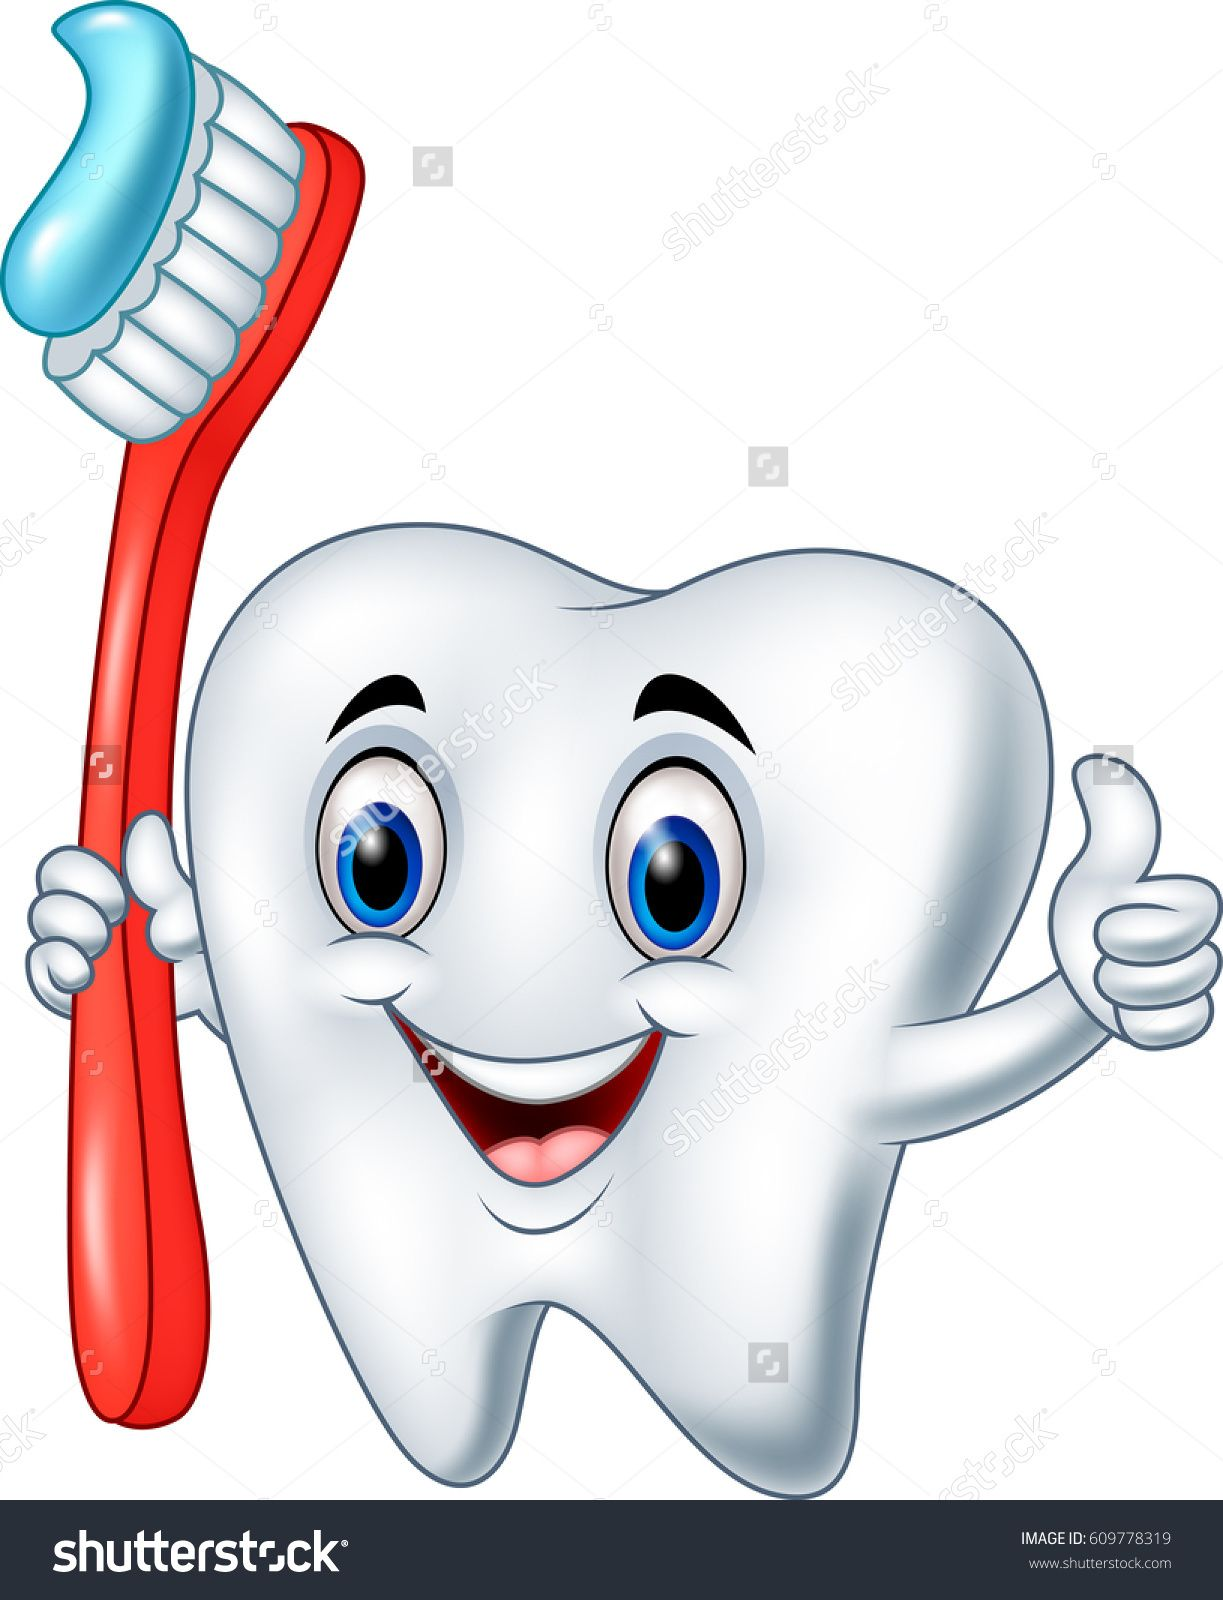 cartoon tooth holding a tooth brush giving thumb up [ 1223 x 1600 Pixel ]